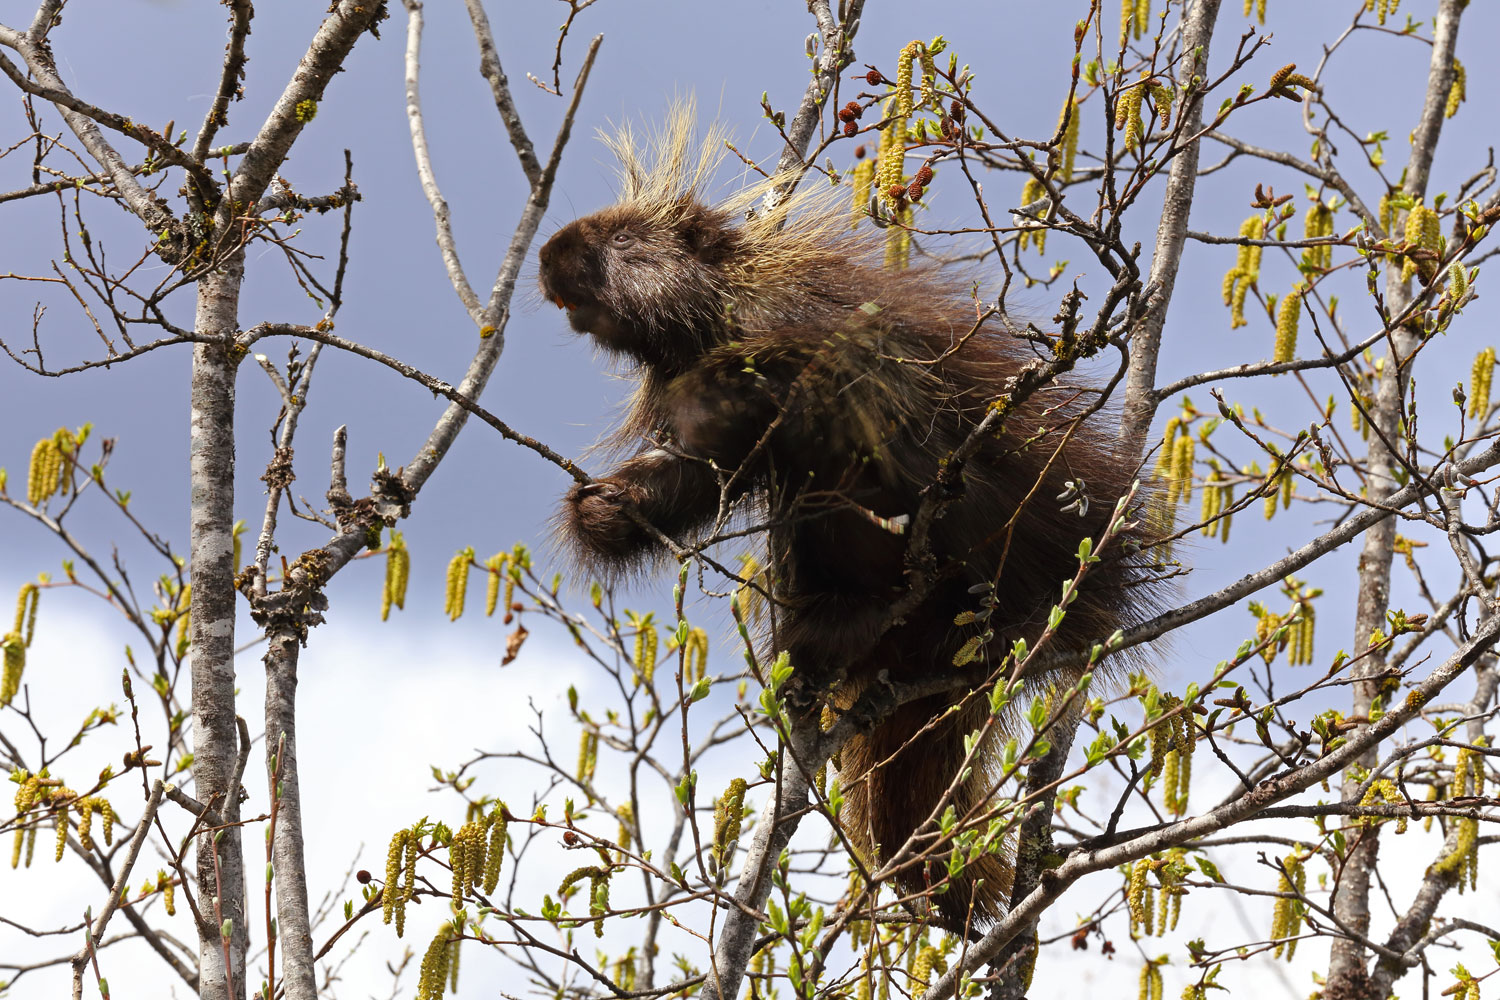 Porcupine in willow trees in Southeast Alaska